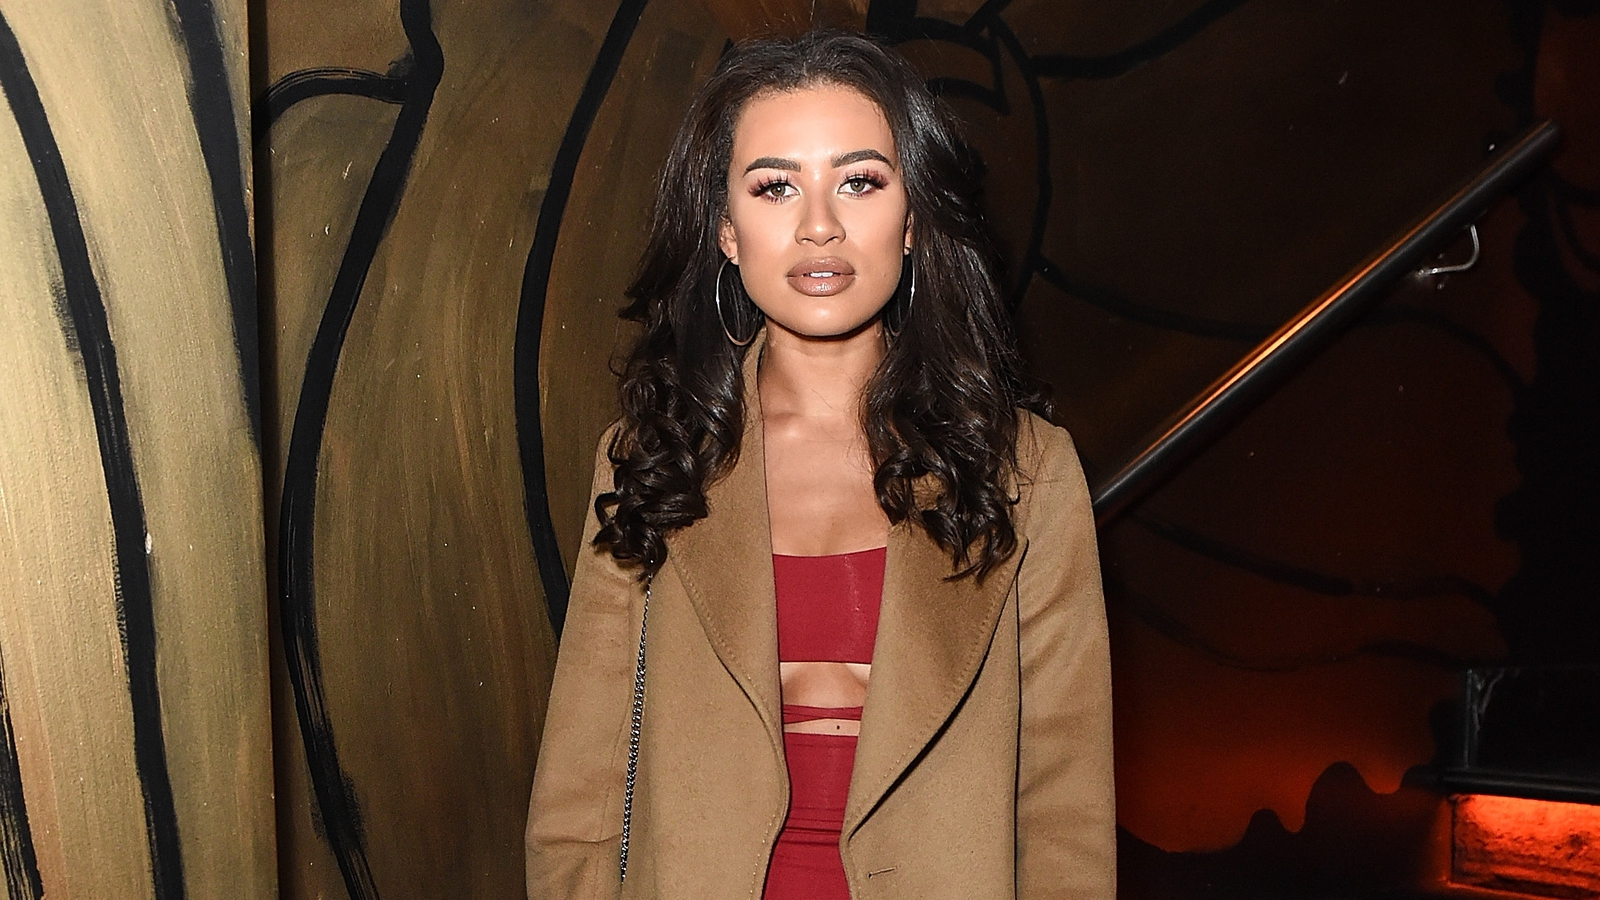 Former Love Island contestant points warning